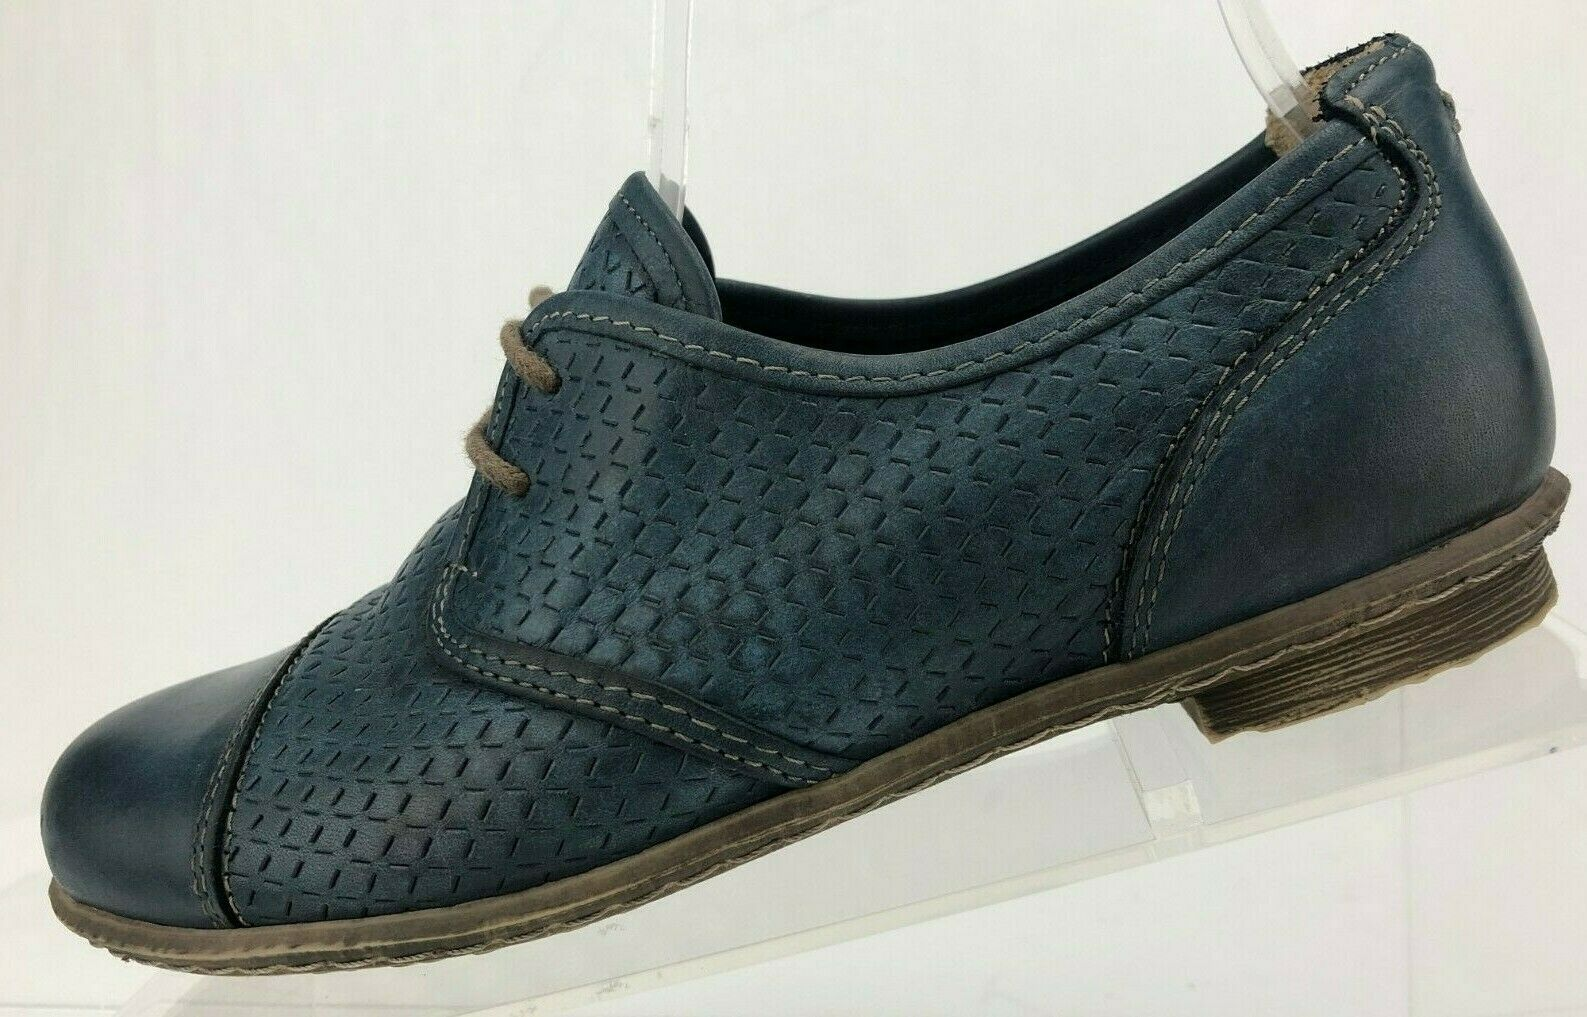 Taos Oxfords Jiminy blu Leather Casual Dress scarpe Comfort donna Dimensione 5,5.5